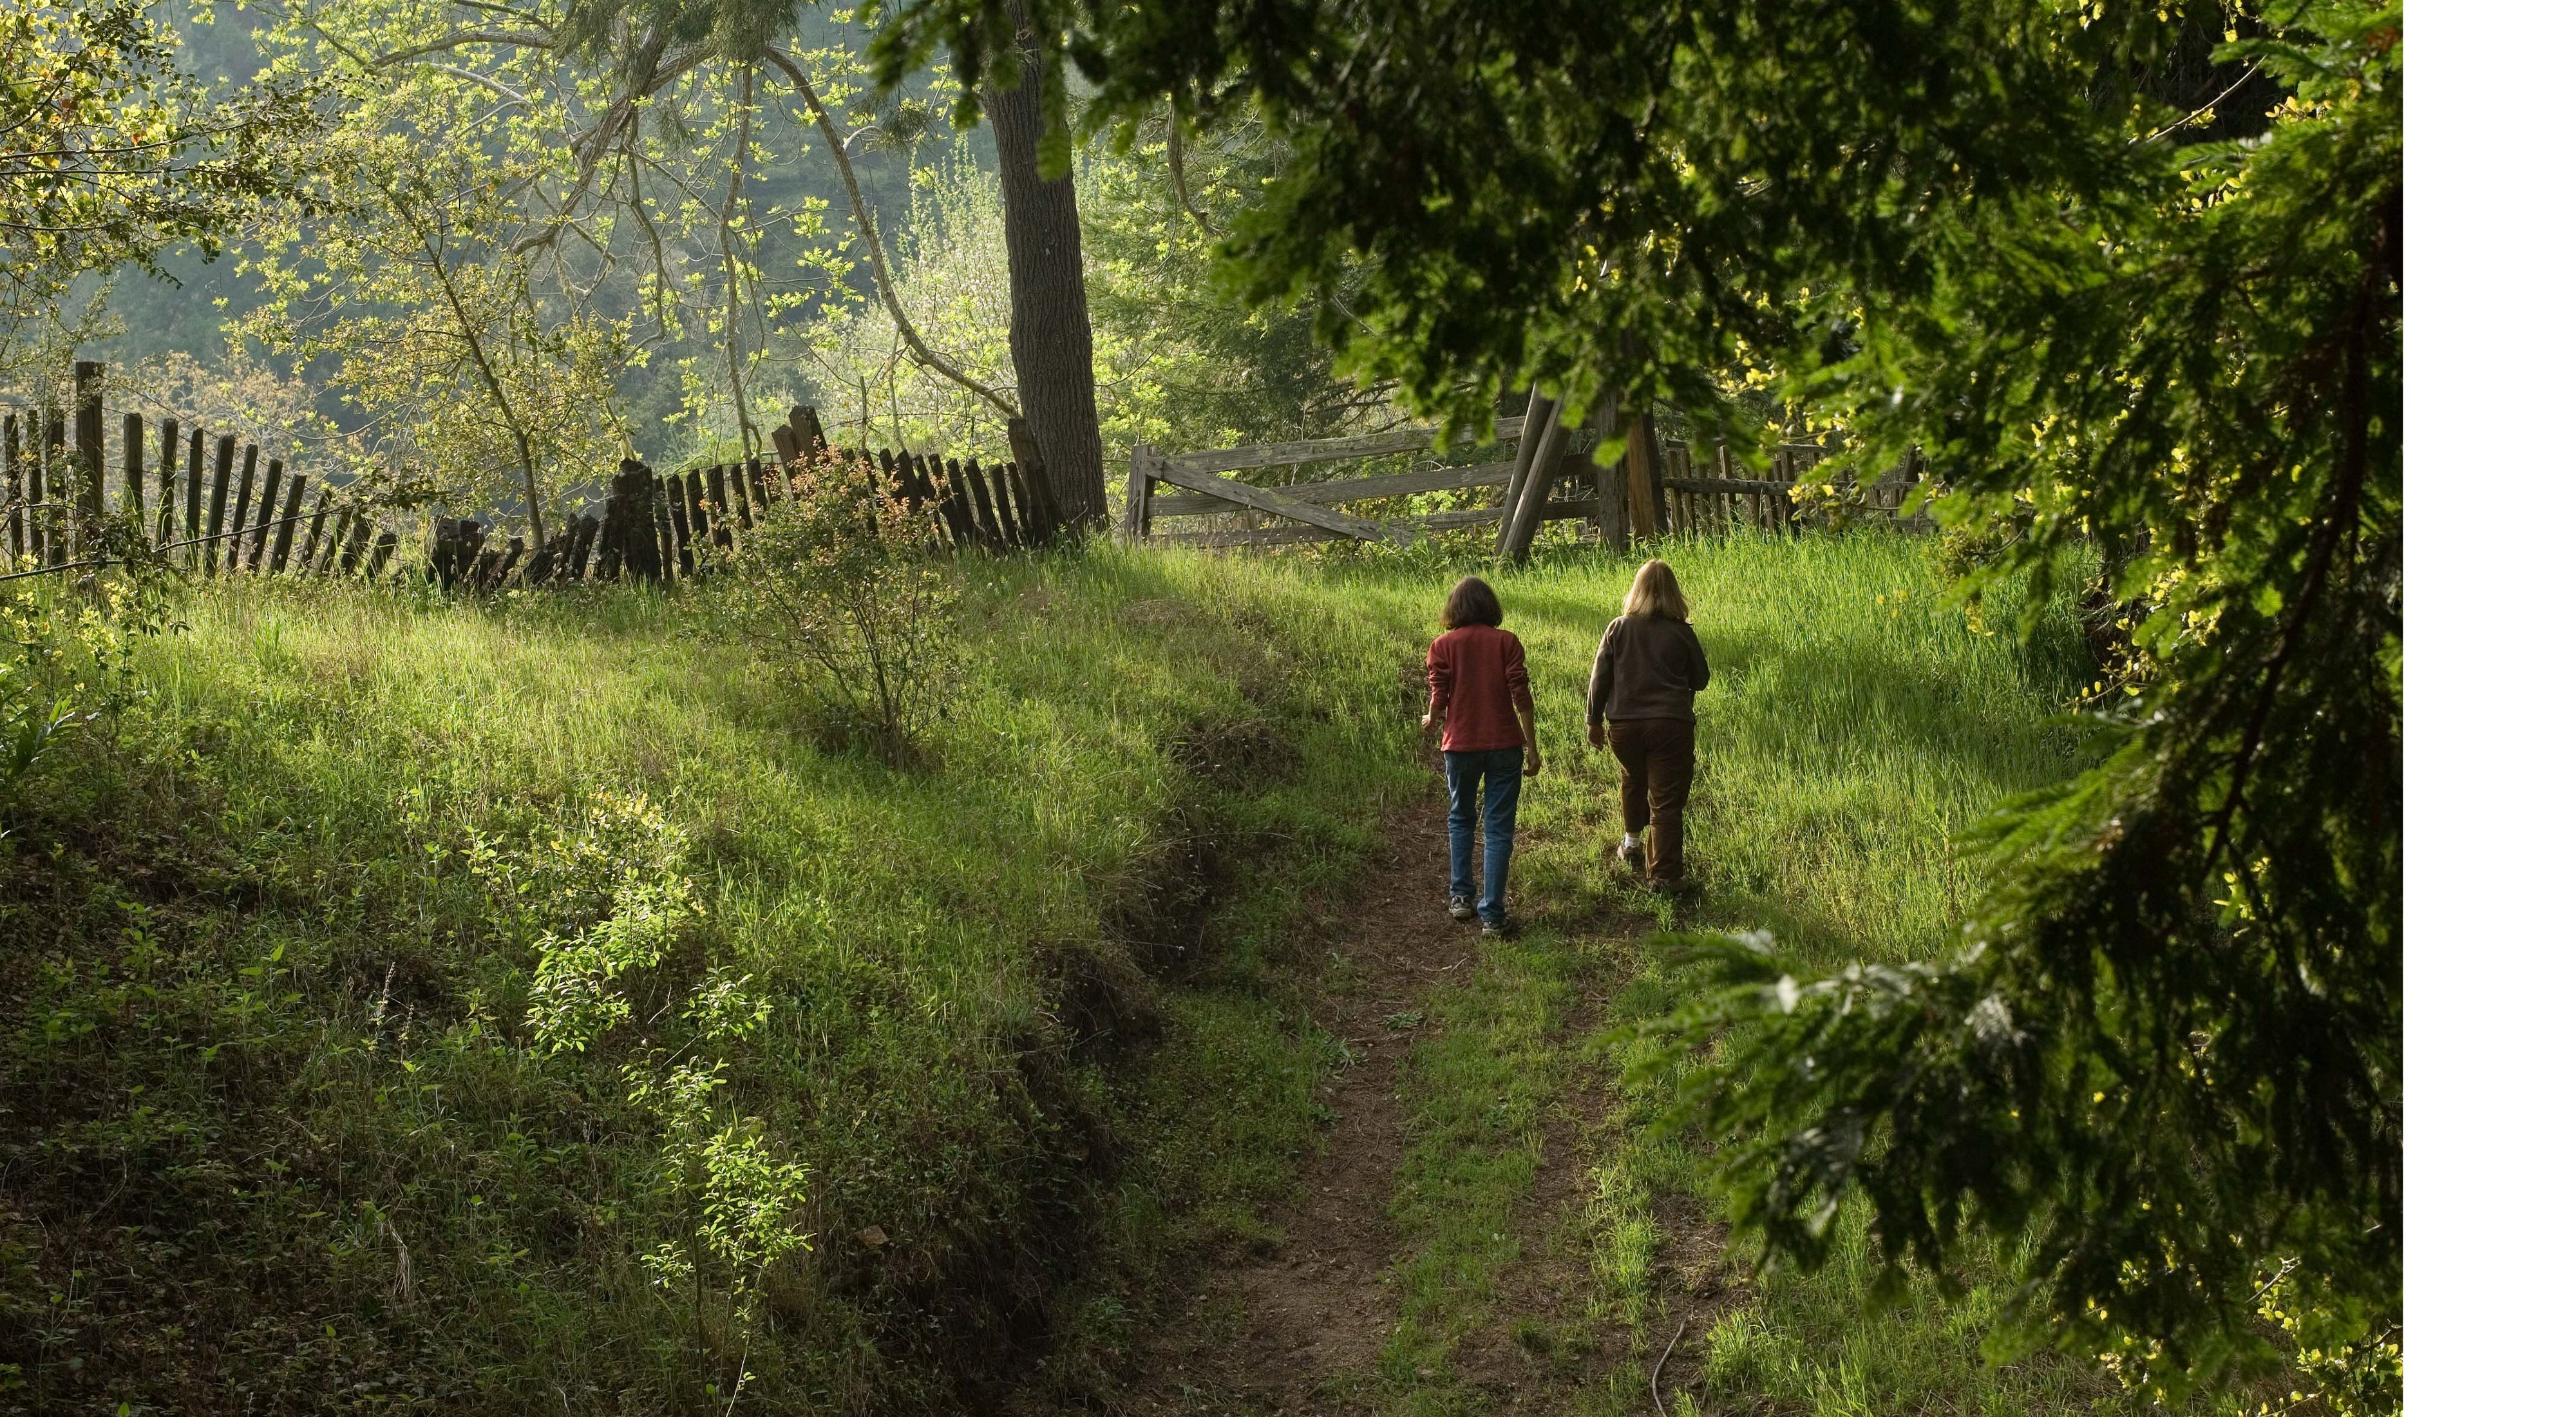 Visitors explore the old homestead at The Nature Conservancy's Palo Corona Ranch in Monterey County, California.